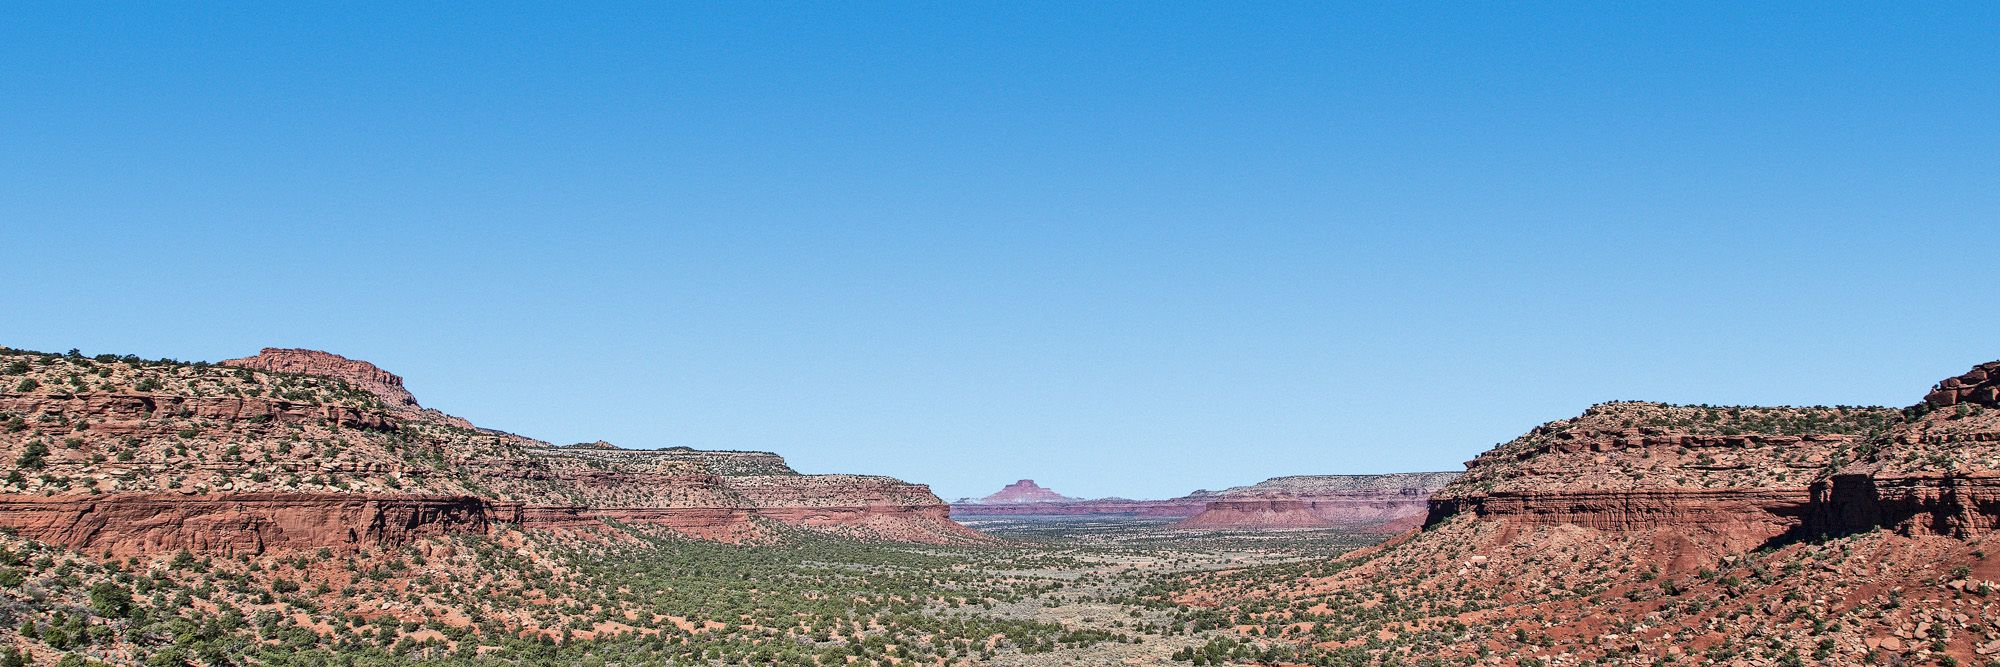 Panorama from Fry Canyon, not included in Trump's reduced monuments.